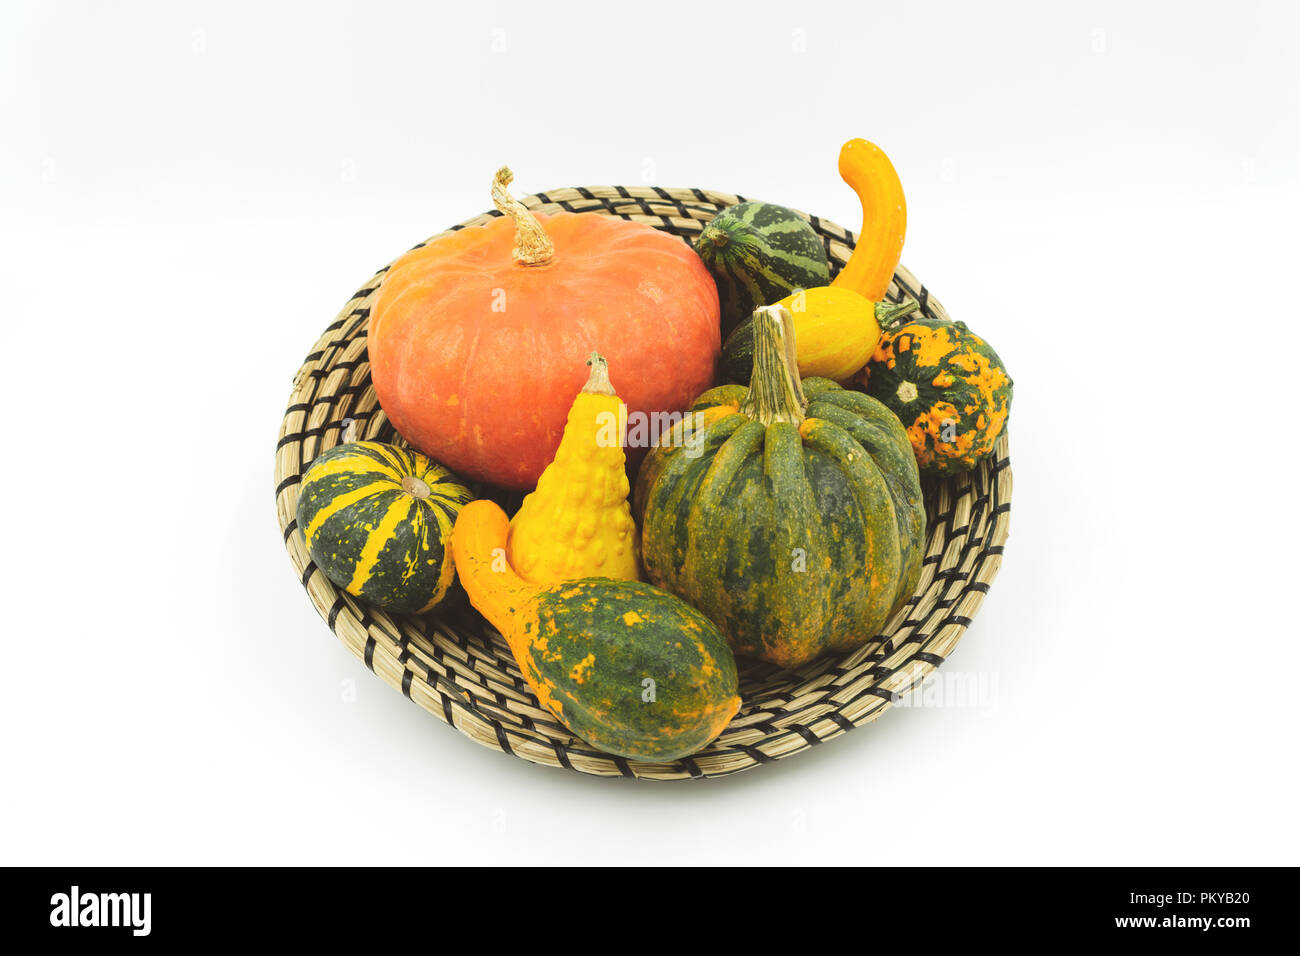 Various Types Of Decorative Pumpkins In A Decorative Bast Basket